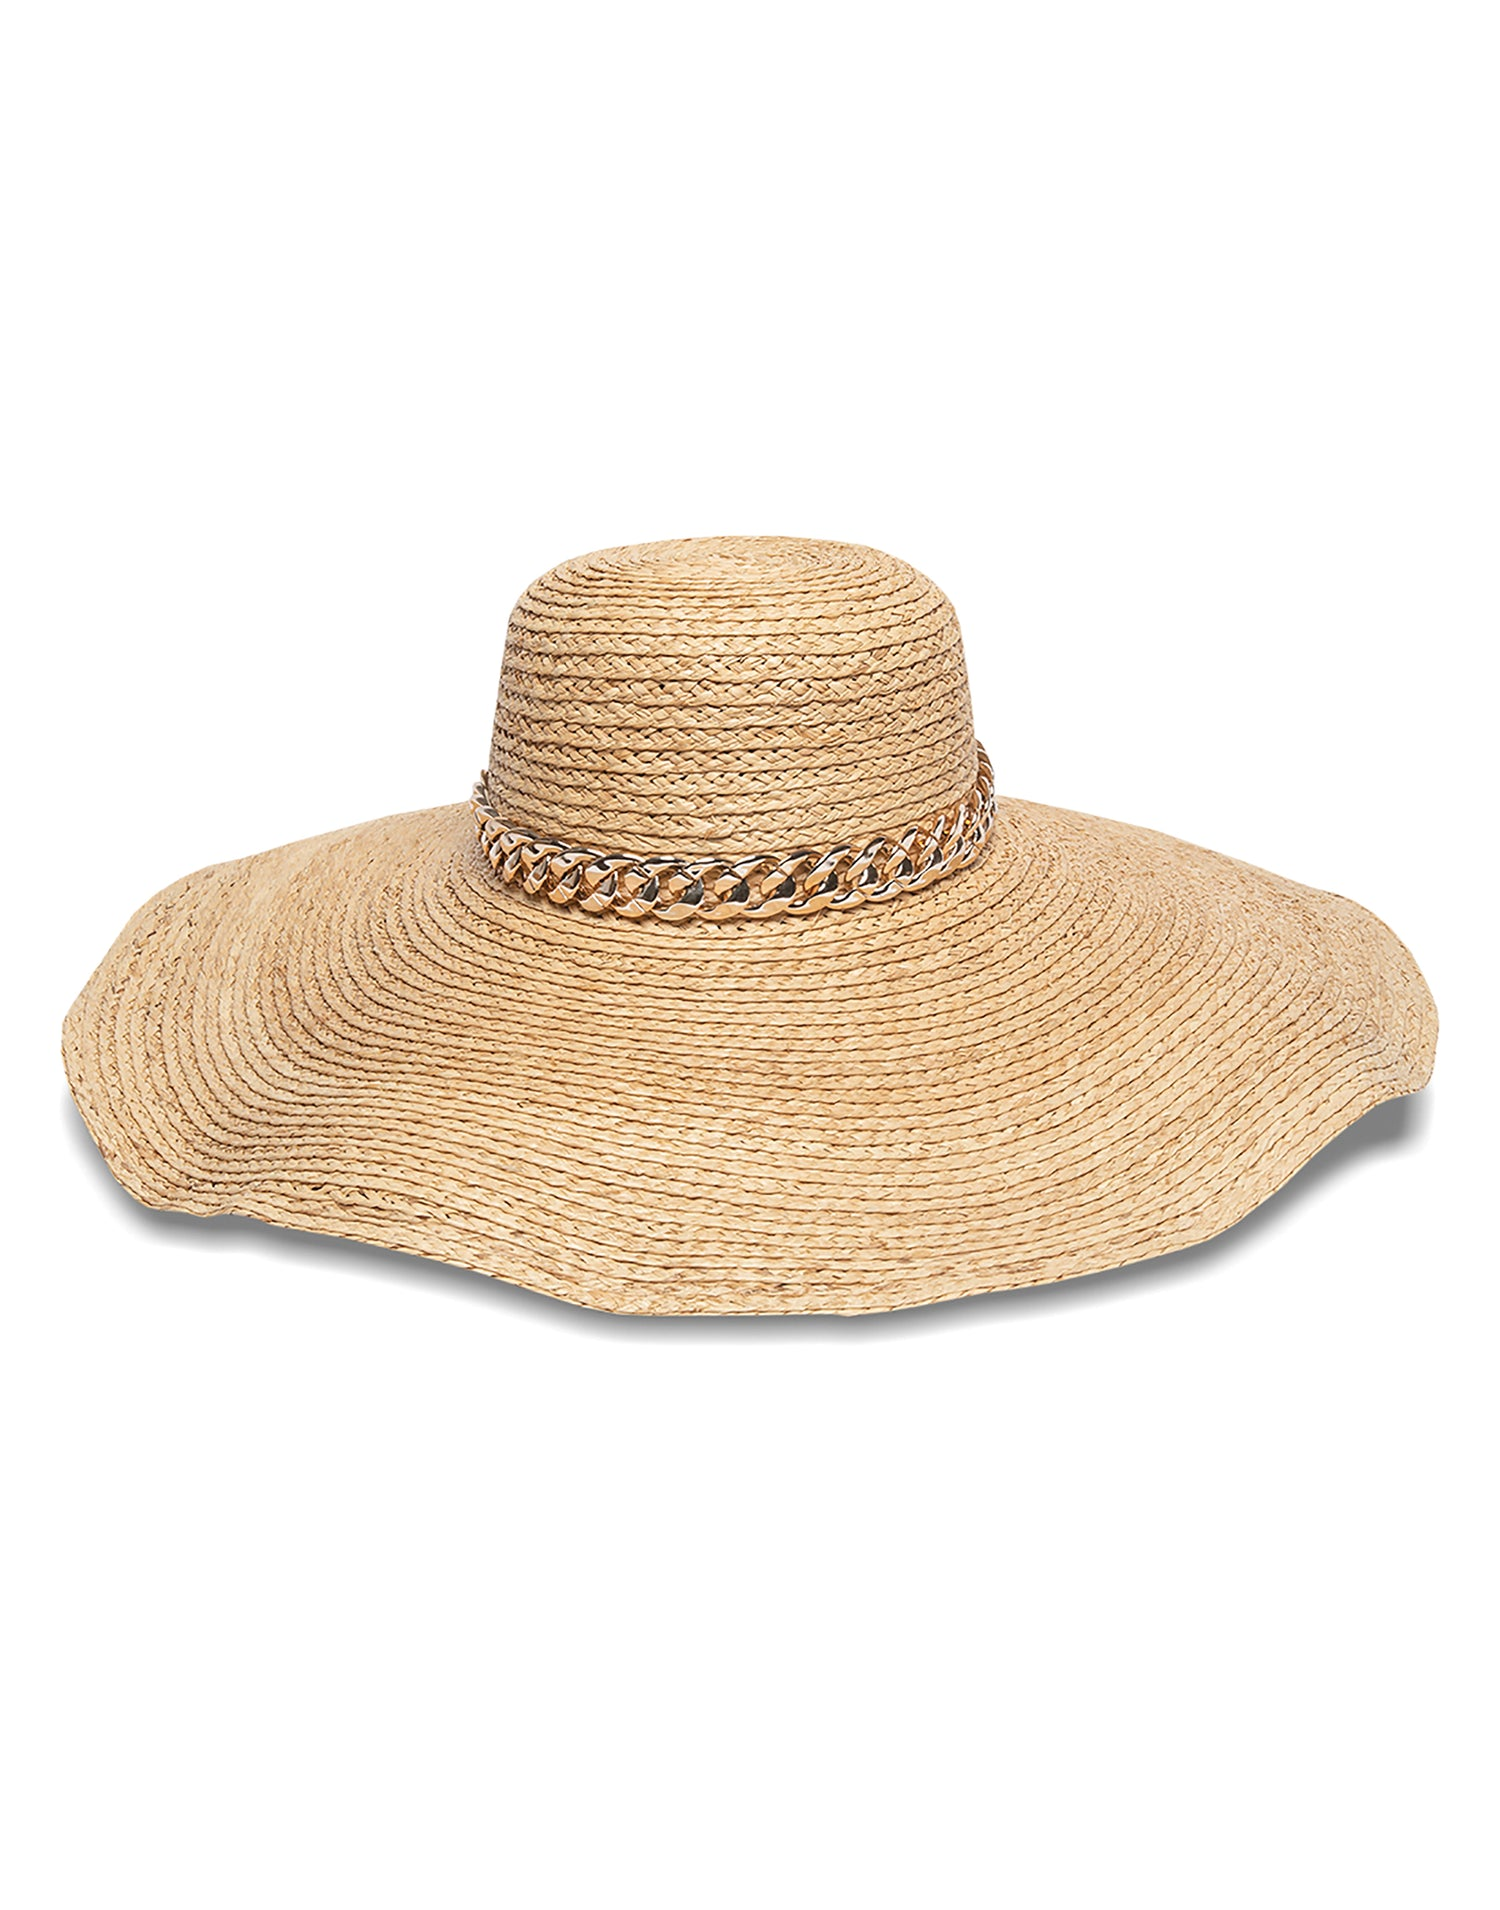 Nikki Beach's Lucia Raffia Hat with Gold Link Trim - product view